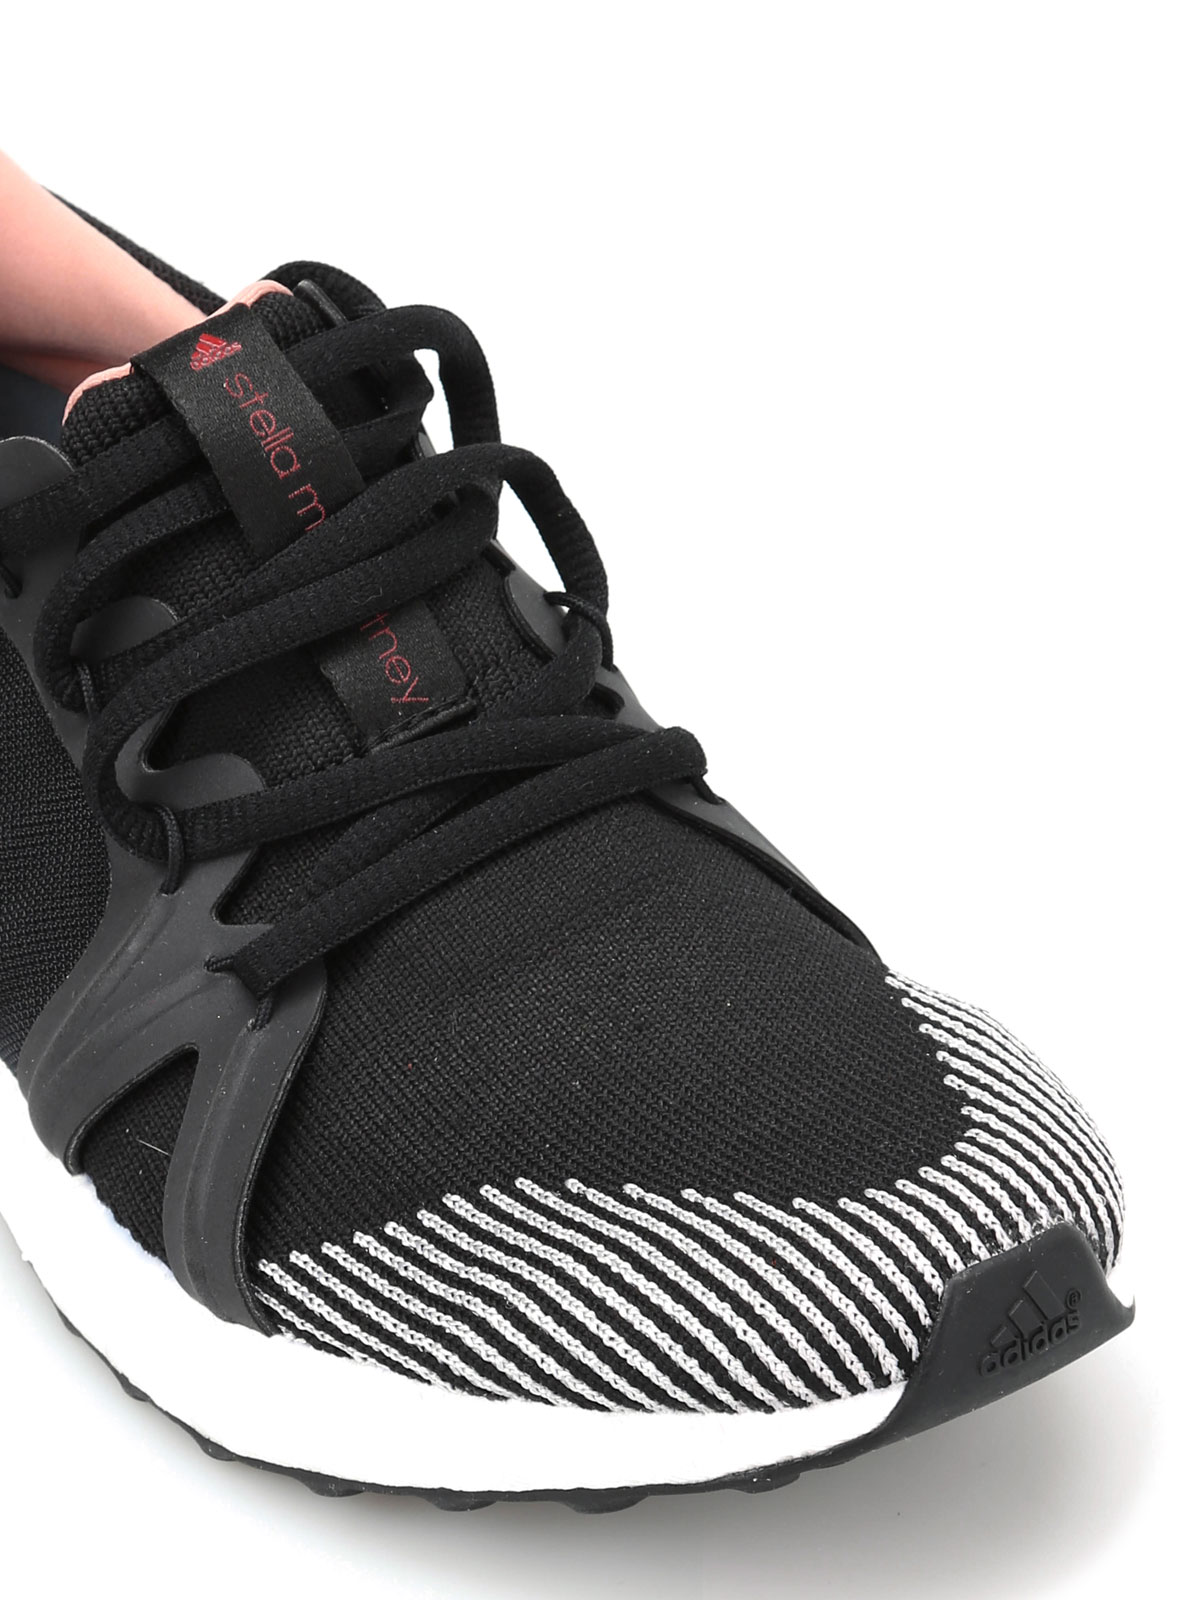 online retailer b57e0 5d455 iKRIX ADIDAS BY STELLA MCCARTNEY  trainers - Ultra Boost running shoes